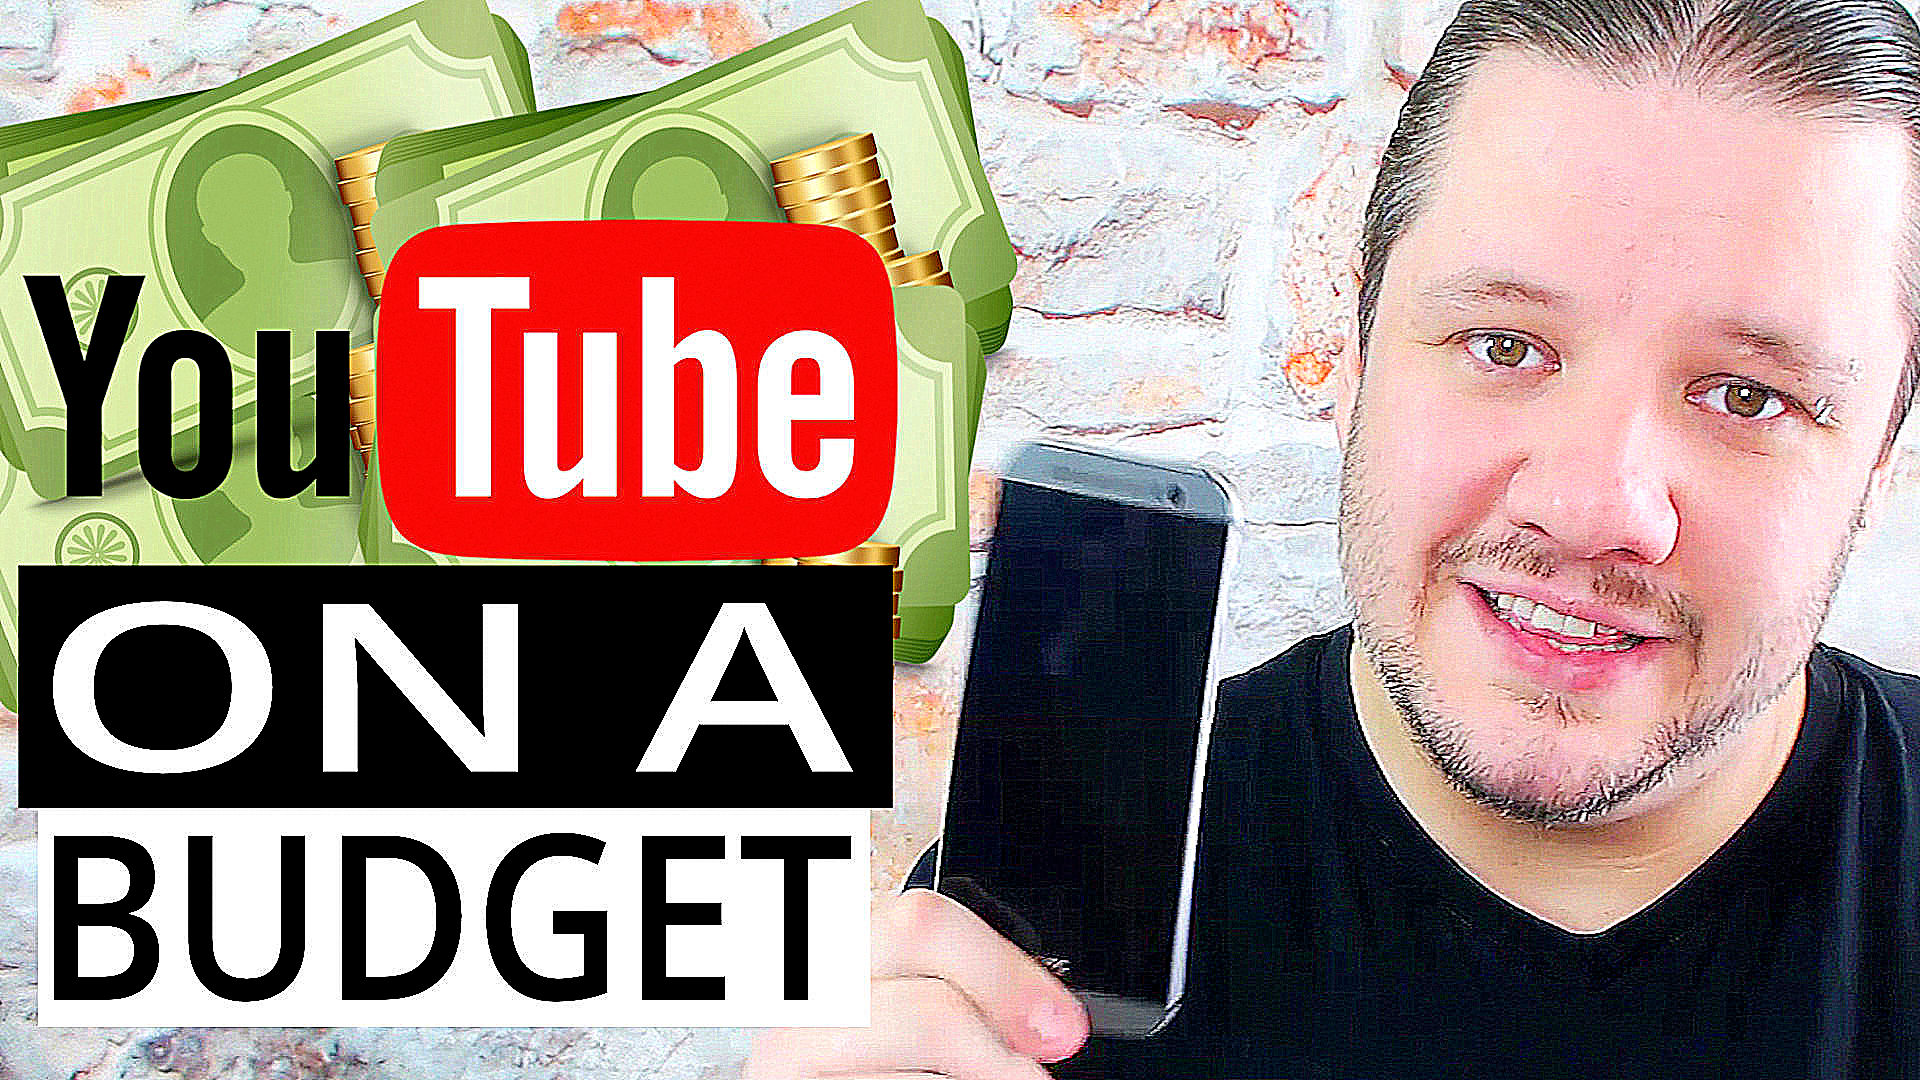 alan spicer,alanspicer,youtube tips,youtube tricks,asyt,youtube on a budget,budget youtube,youtube,get started on youtube,cheap youtube setup,youtube setup,youtube cheap,cheap youtube,youtube setup cheap,cheap vlogging equipment,cheap youtube equipment,youtube equipment,making videos on a budget,making videos,youtube webcam,making videos on a smartphone,cheap youtube recording equipment,youtube editing software,youtube software,spicer,start creating